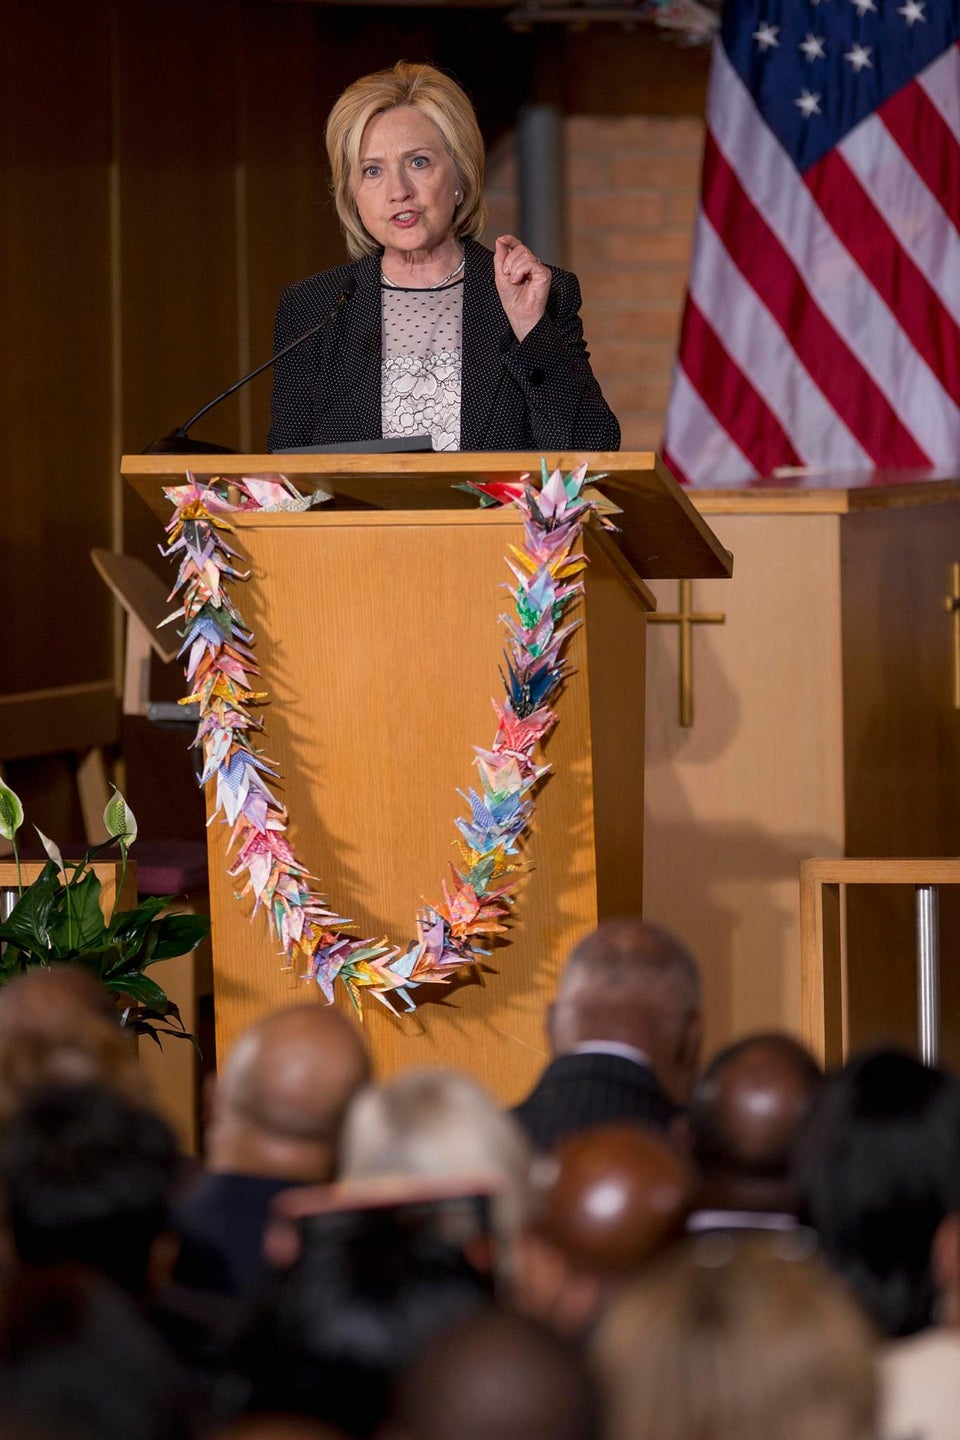 Hillary Clinton Weighs In On DOJ Decision To Seek Death Penalty For Dylan Roof